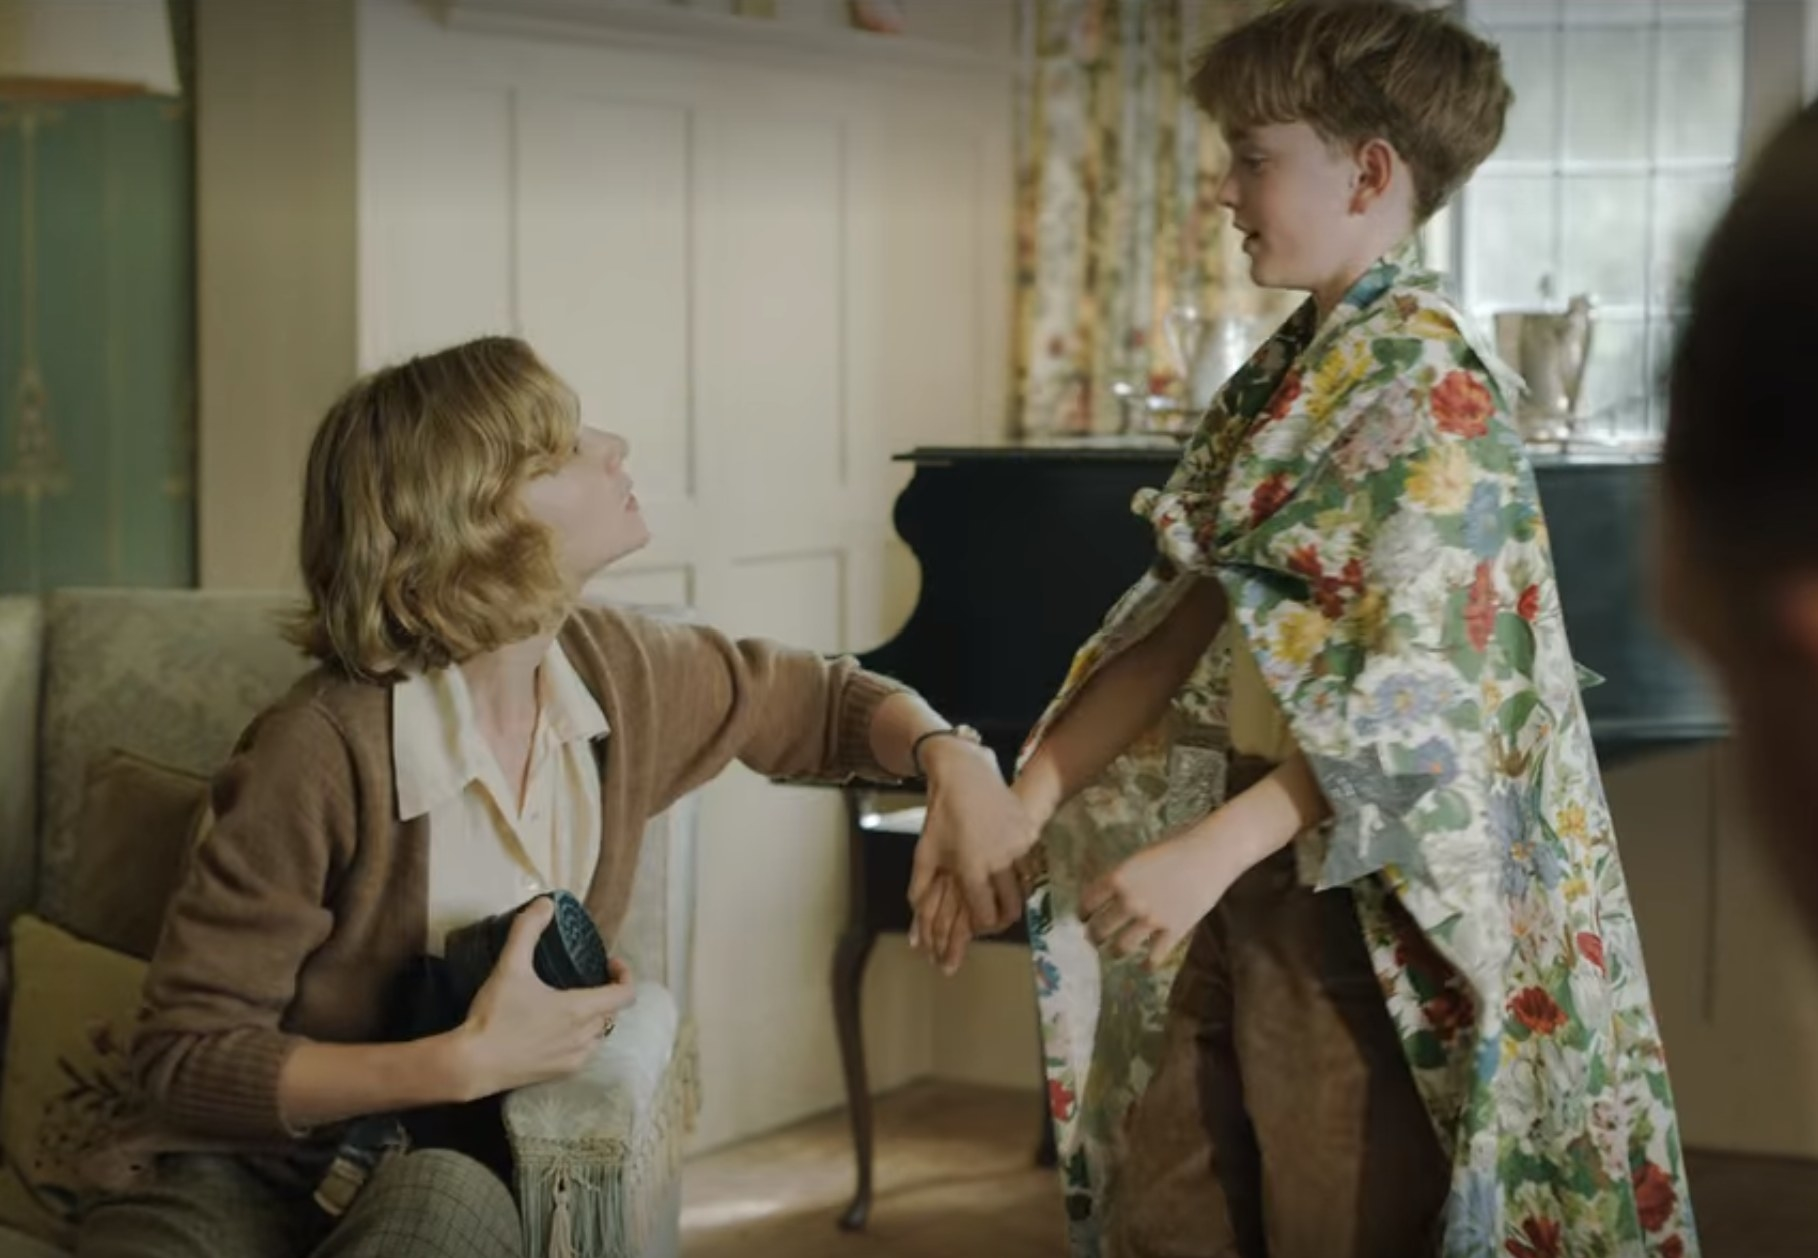 Still from The Dig: Robert and Mrs. Pretty in living room